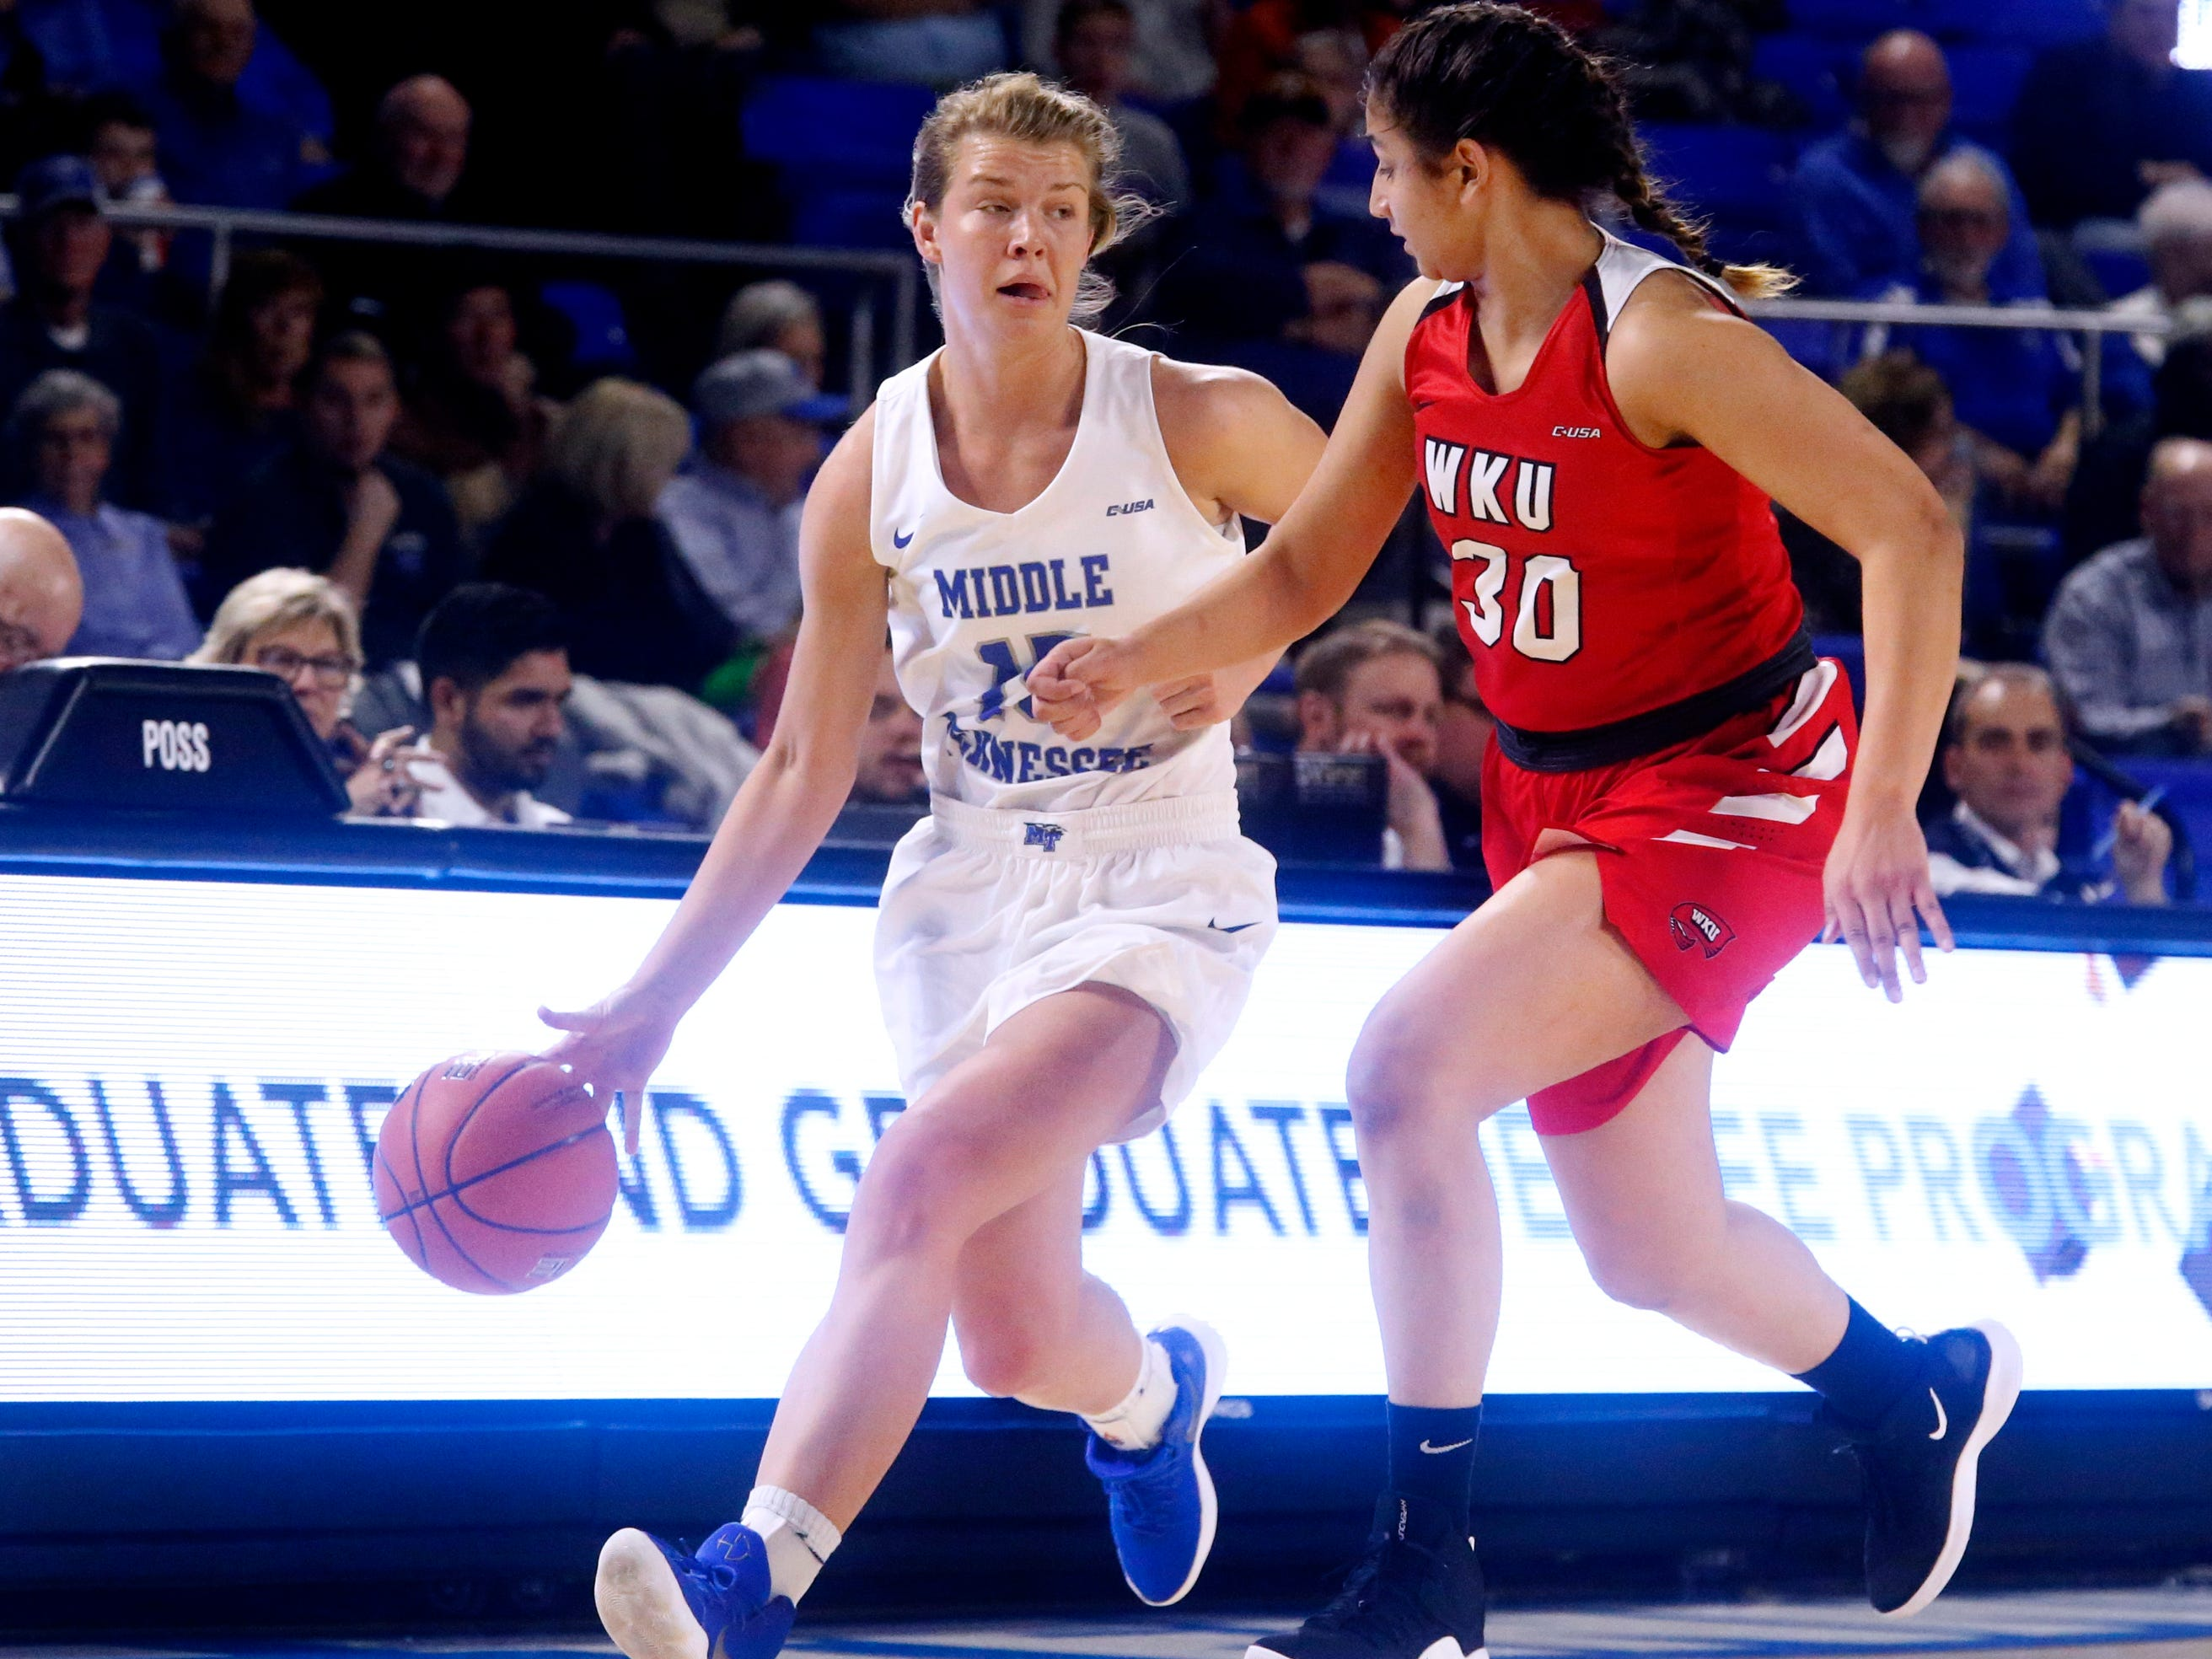 MTSU's guard Anna Jones (15) brings the ball up court as Western's guard Meral Abdelgawad (30) guards her on Thursday, Feb. 14, 2019.